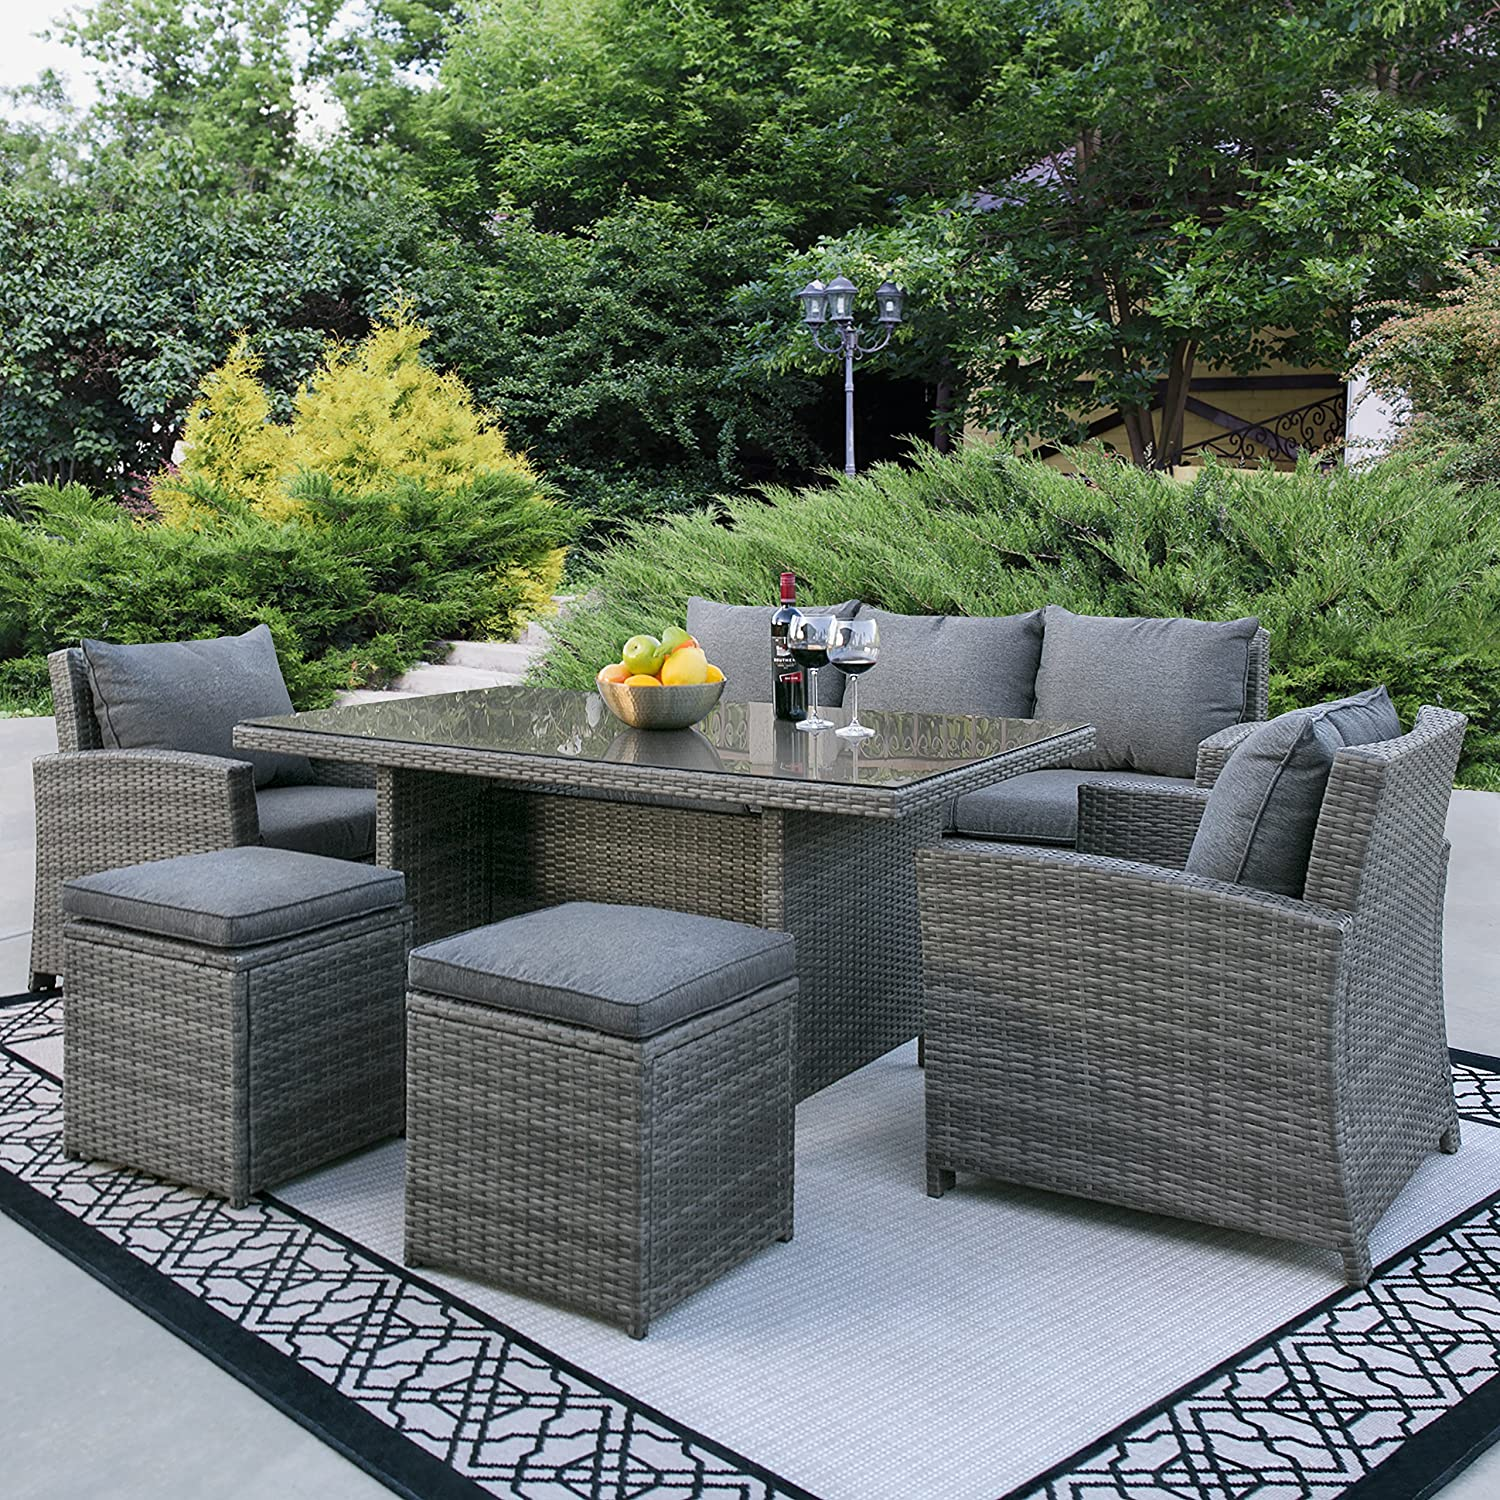 Amazon com best choice products complete outdoor living patio furniture 6 piece wicker dining sofa set grey garden outdoor